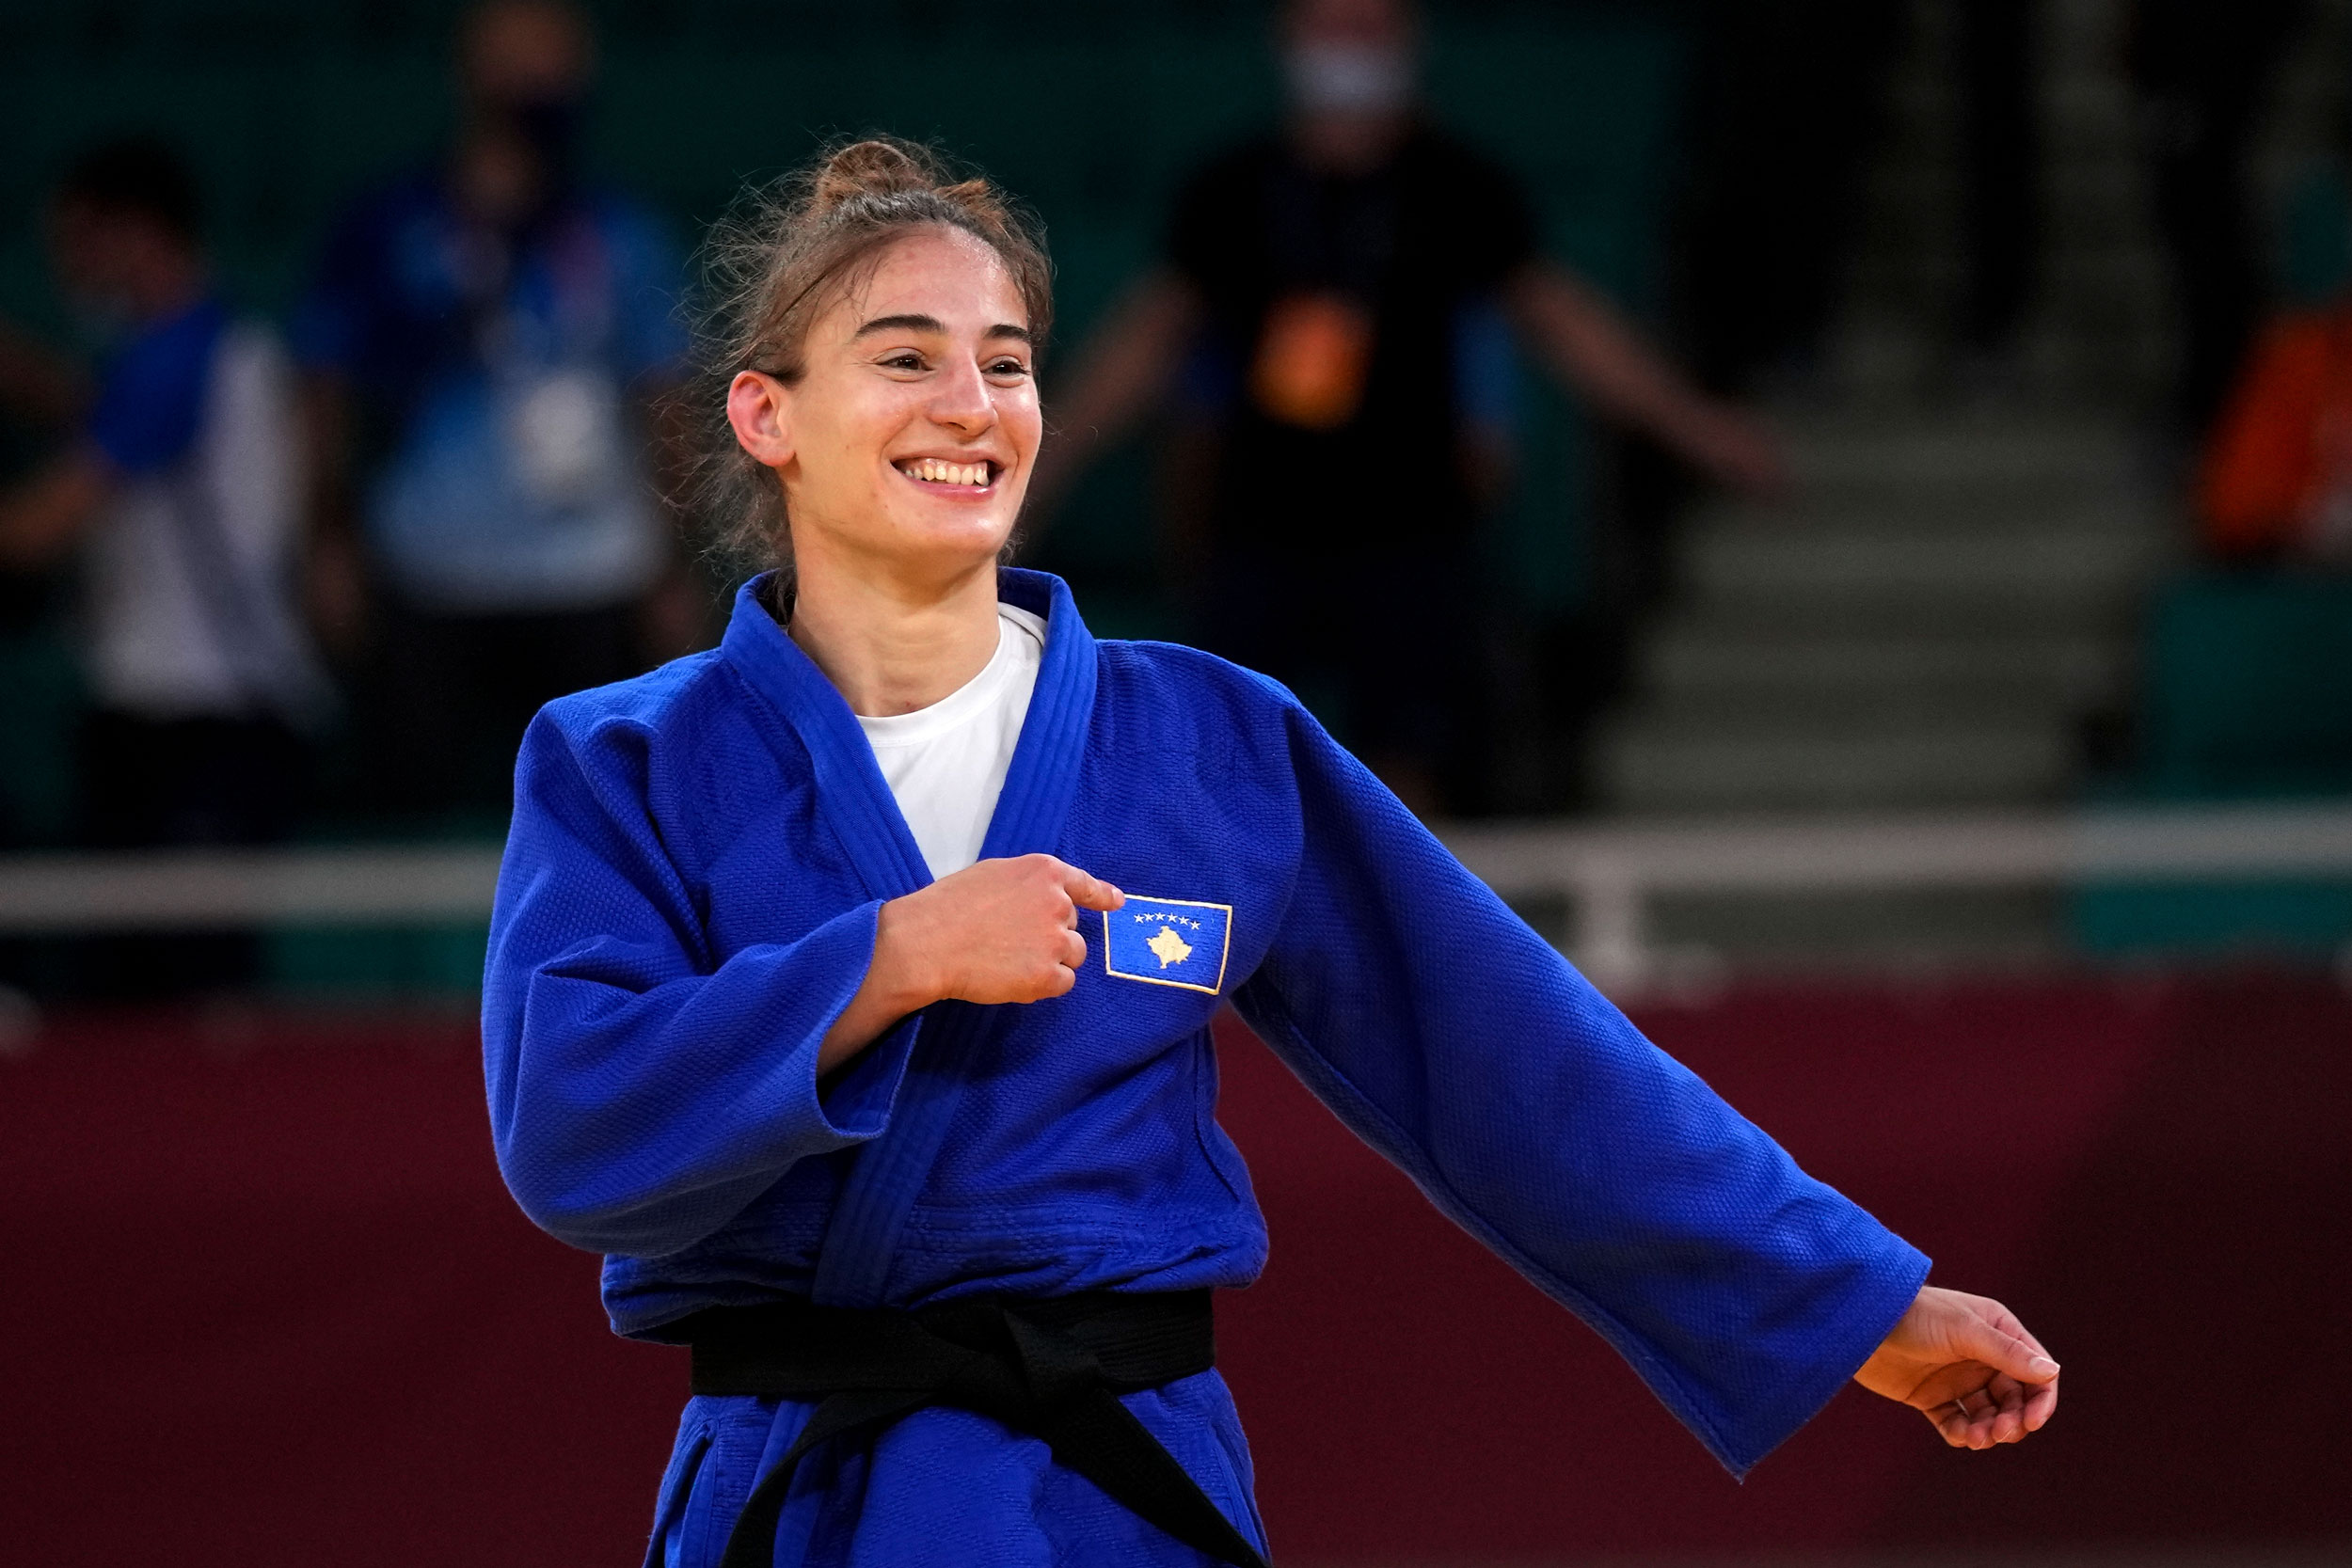 Kosovo's Nora Gjakova celebrates after defeating France's Sarah Leonie Cystique in their -57kg judo final match on July 26.